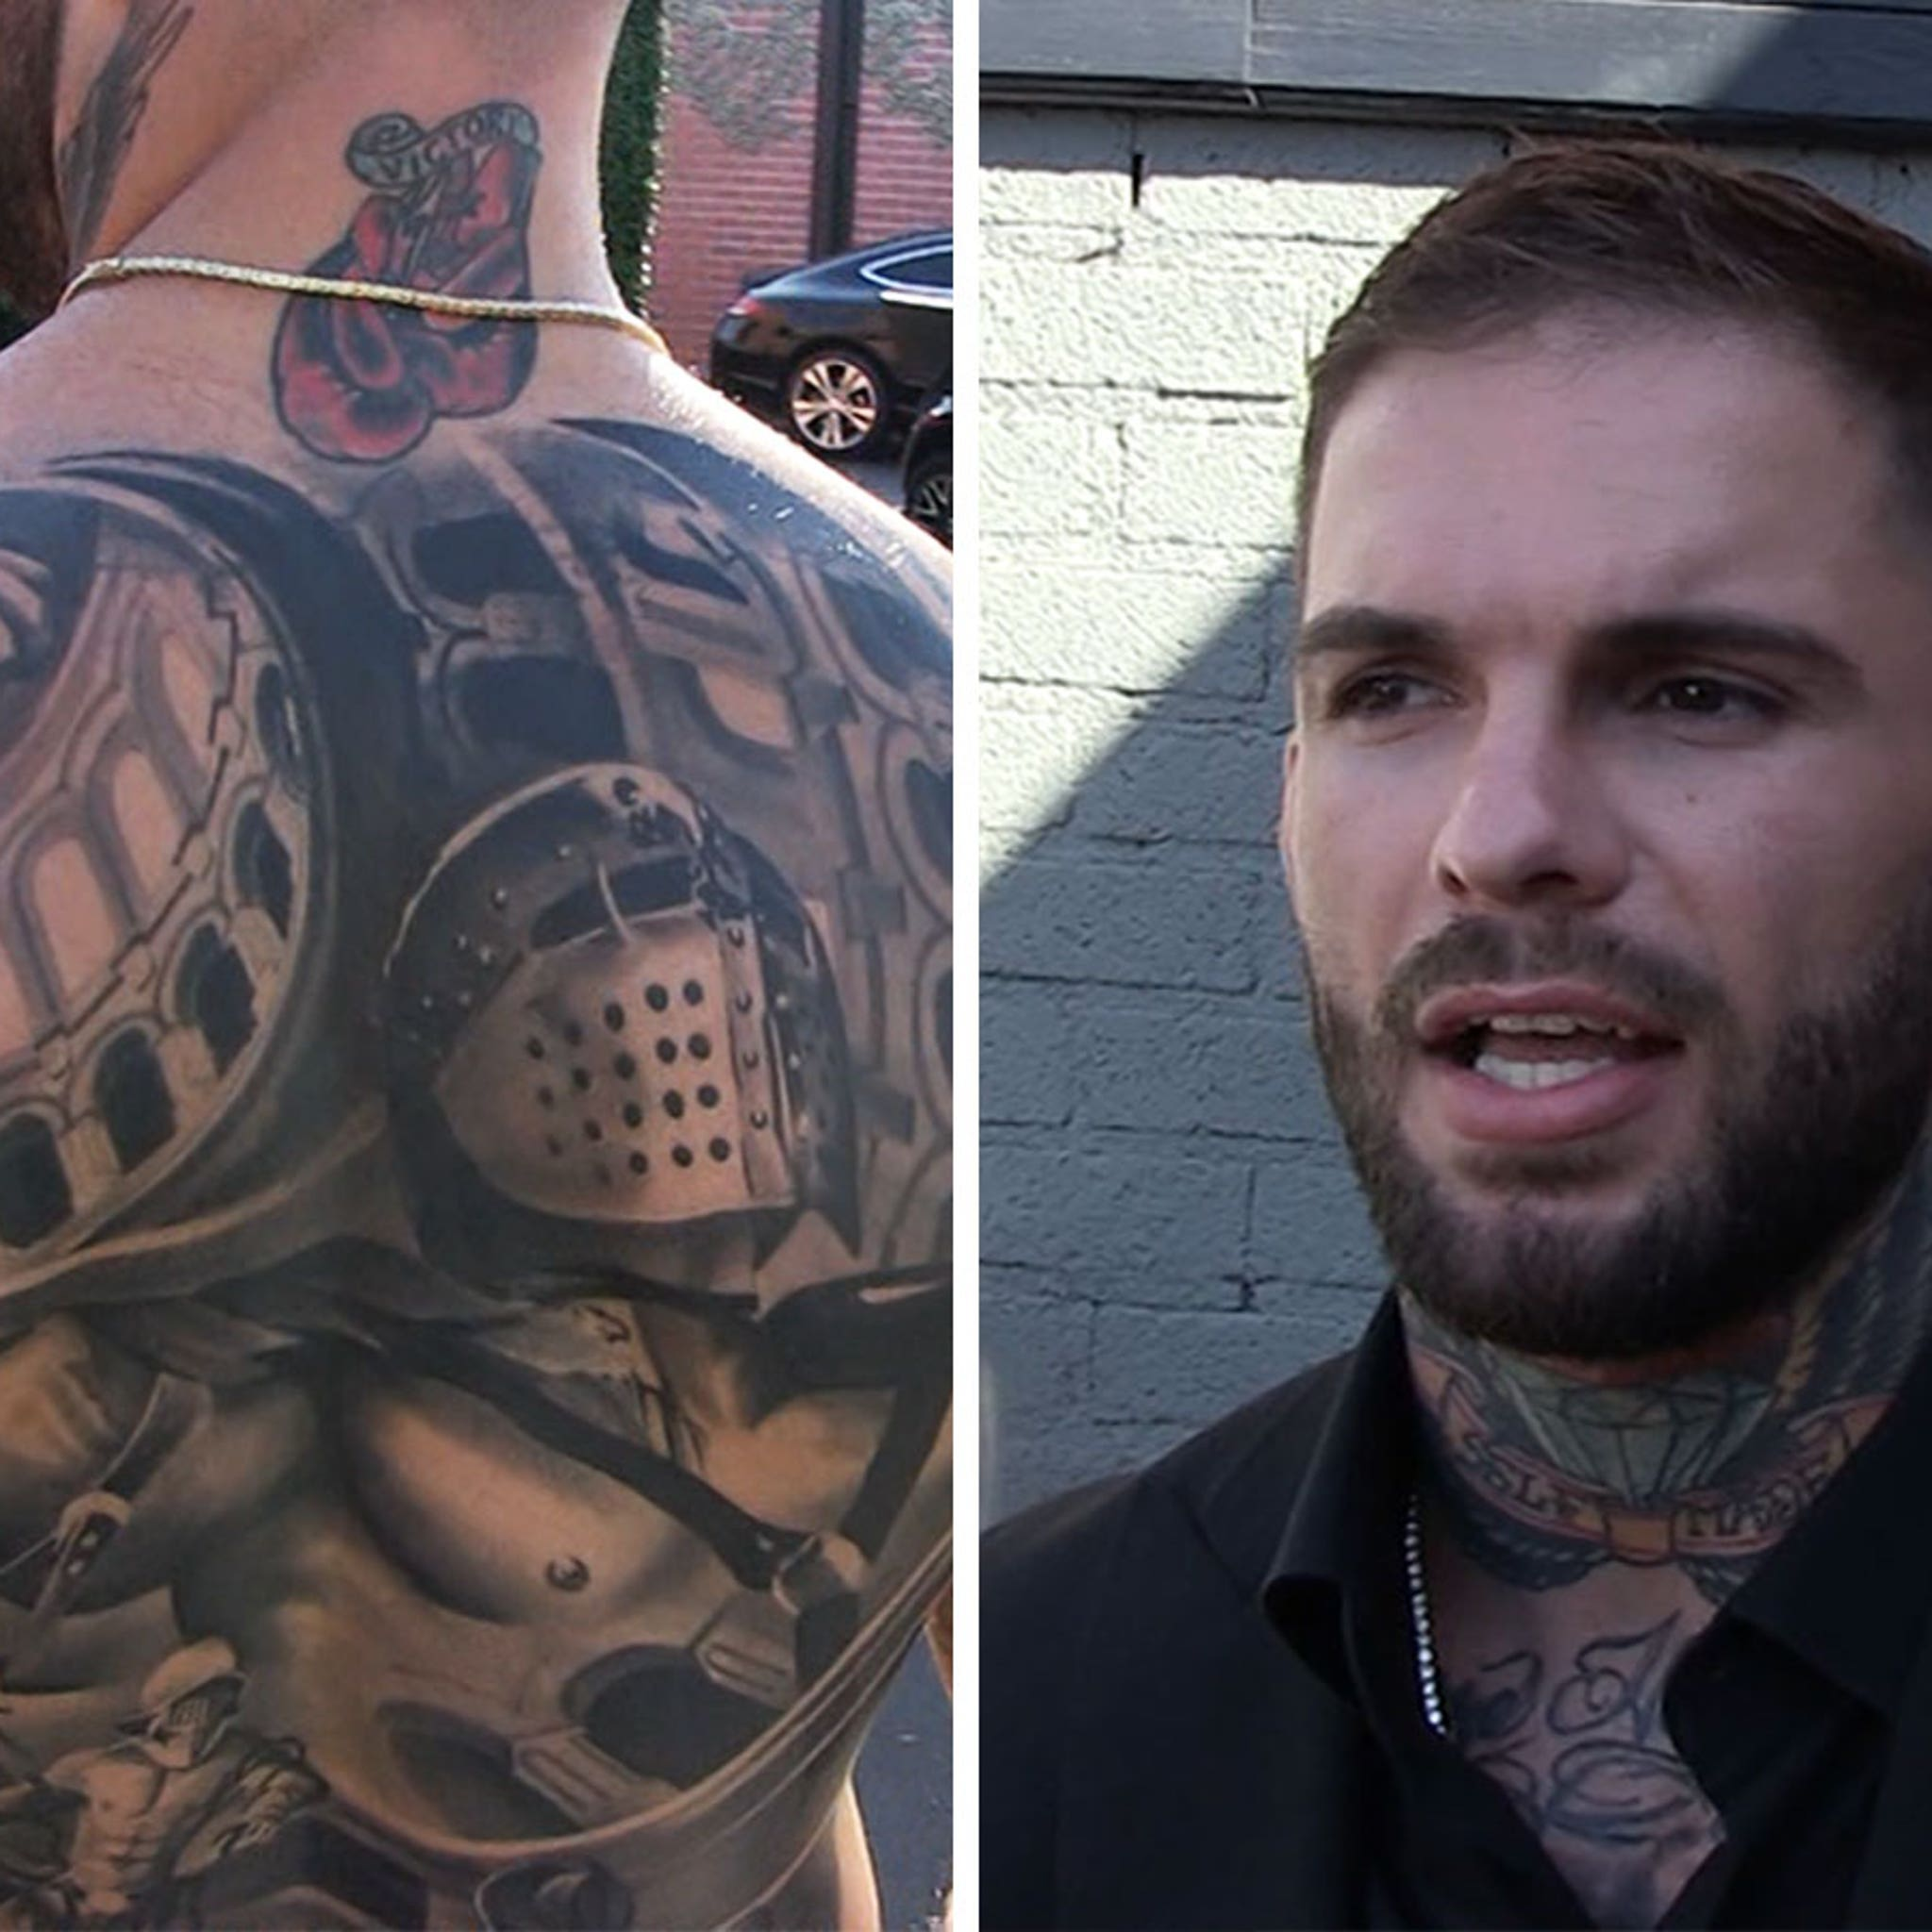 Cody Garbrandt Shows Off Insane Back Tat, Took 25 Hours to Complete!